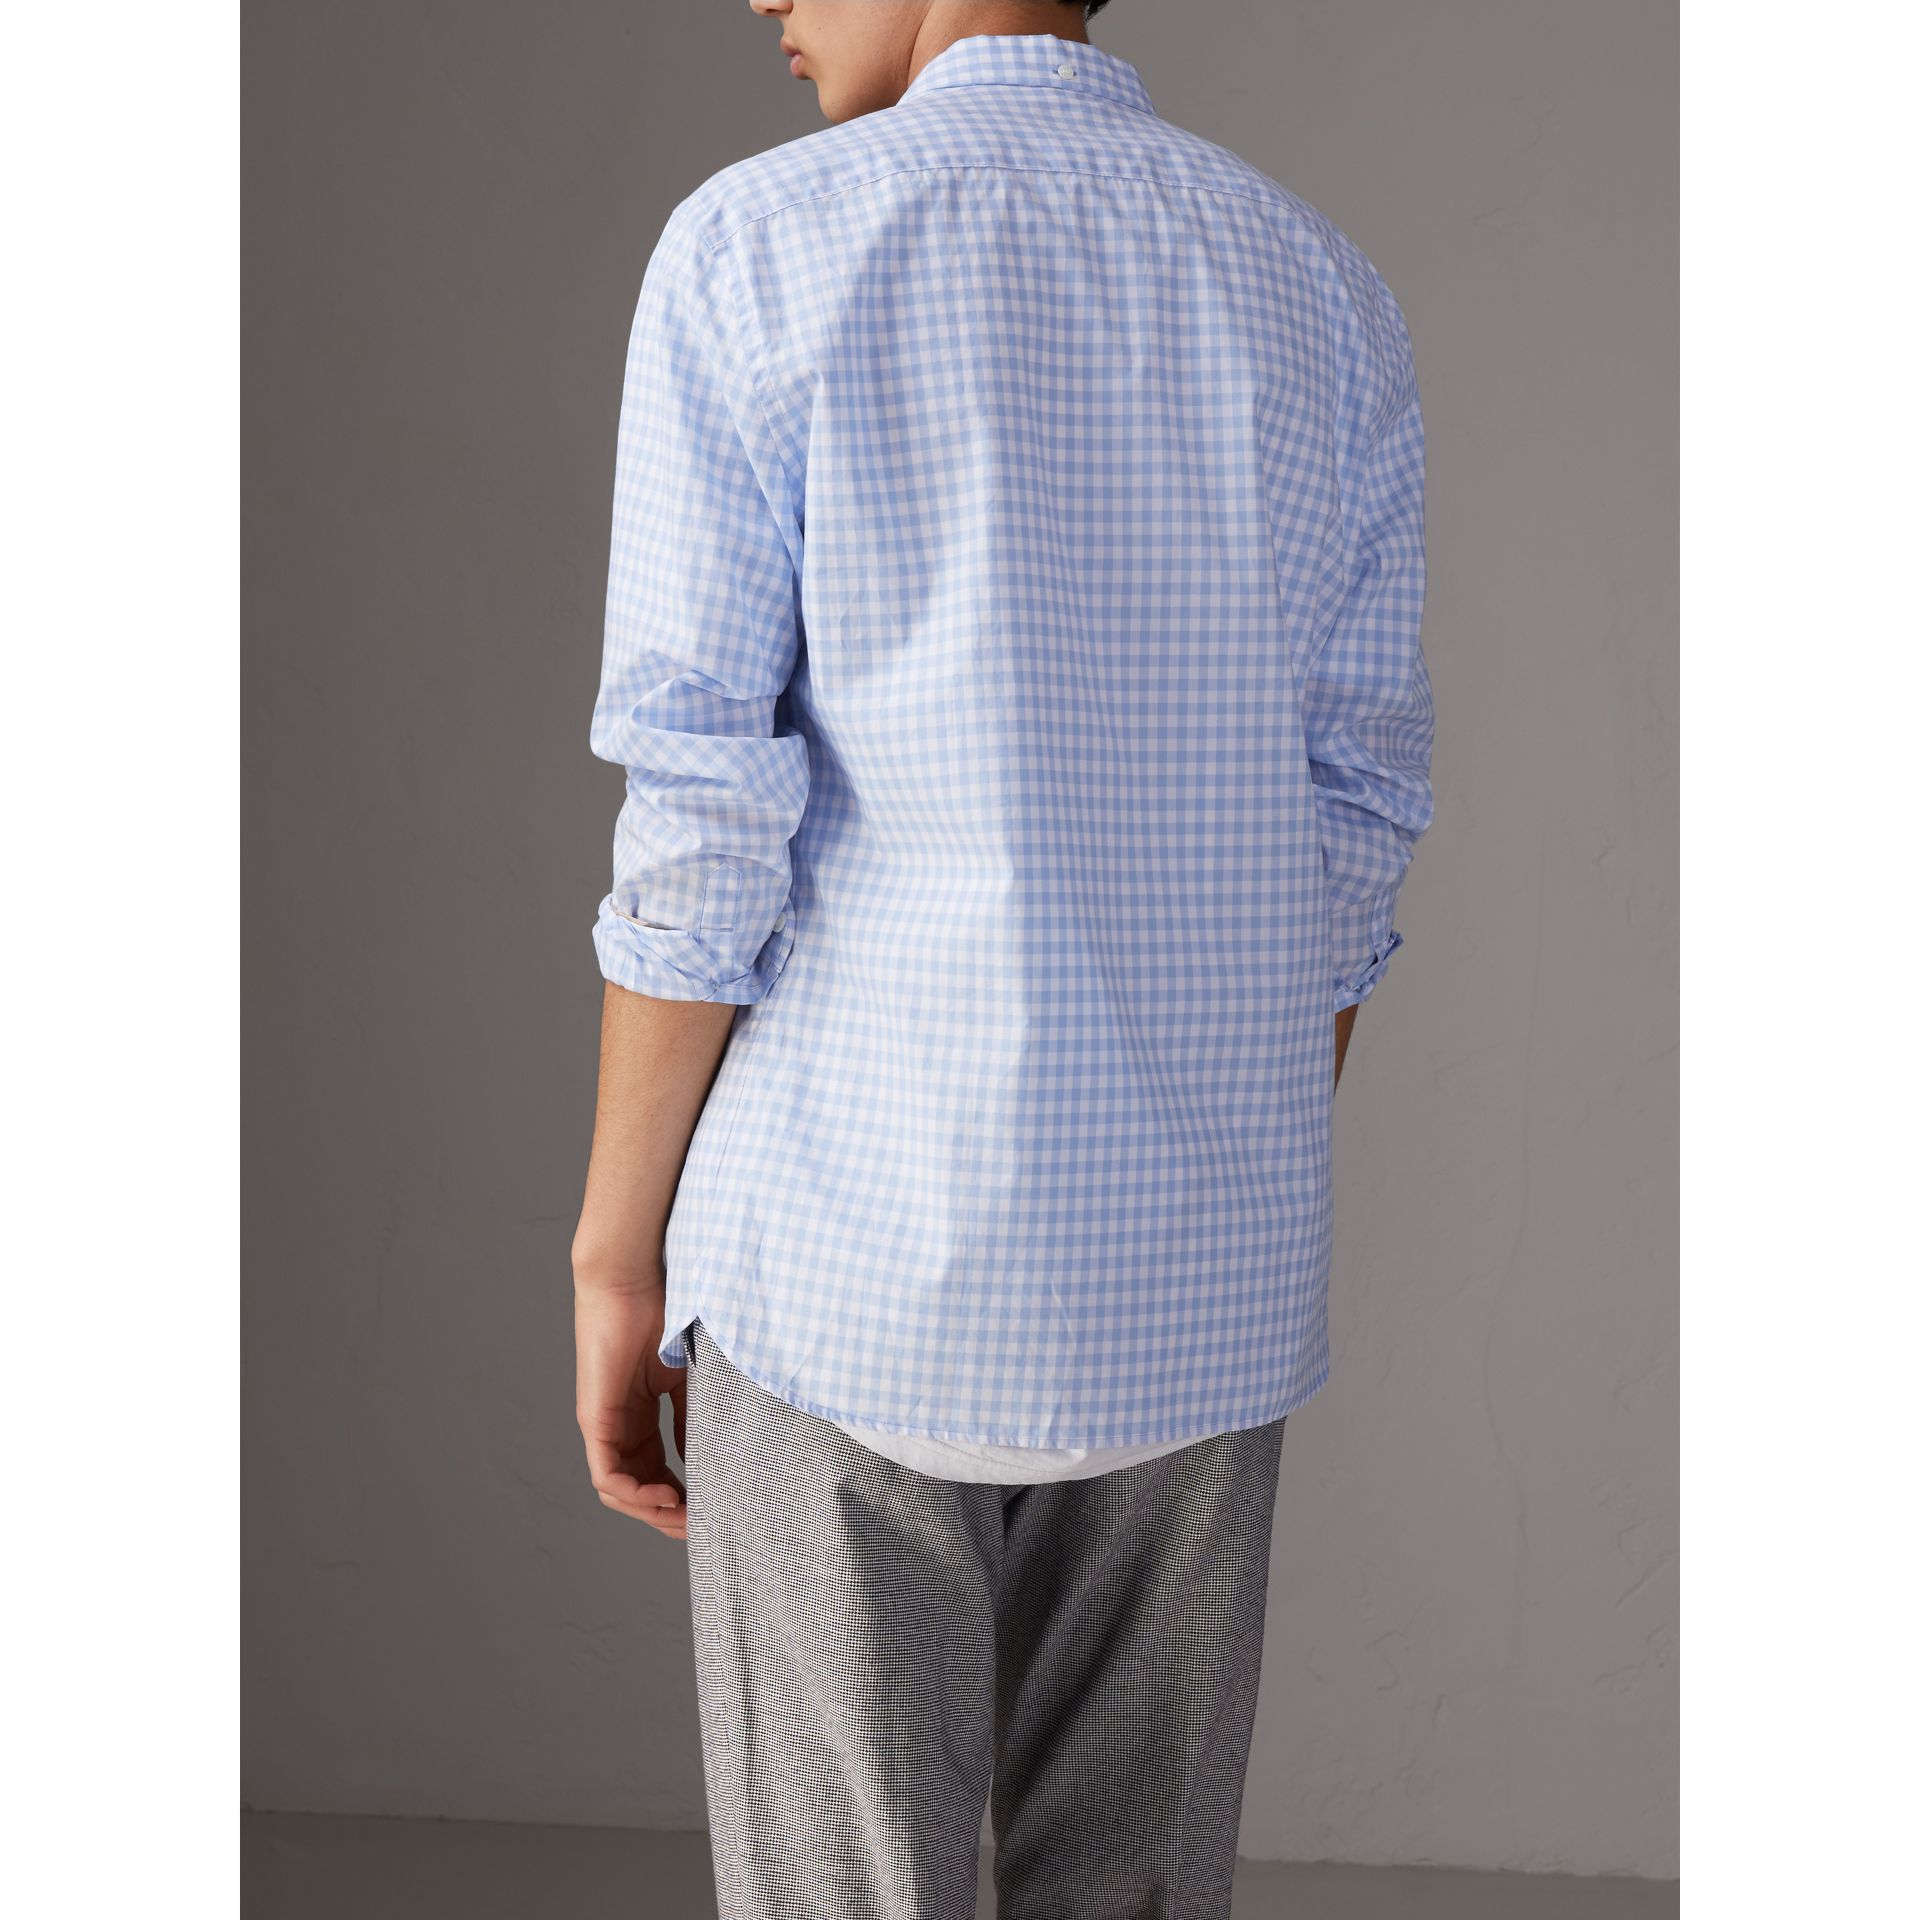 Button-down Collar Gingham Cotton Shirt in Pale Blue - Men | Burberry - gallery image 3